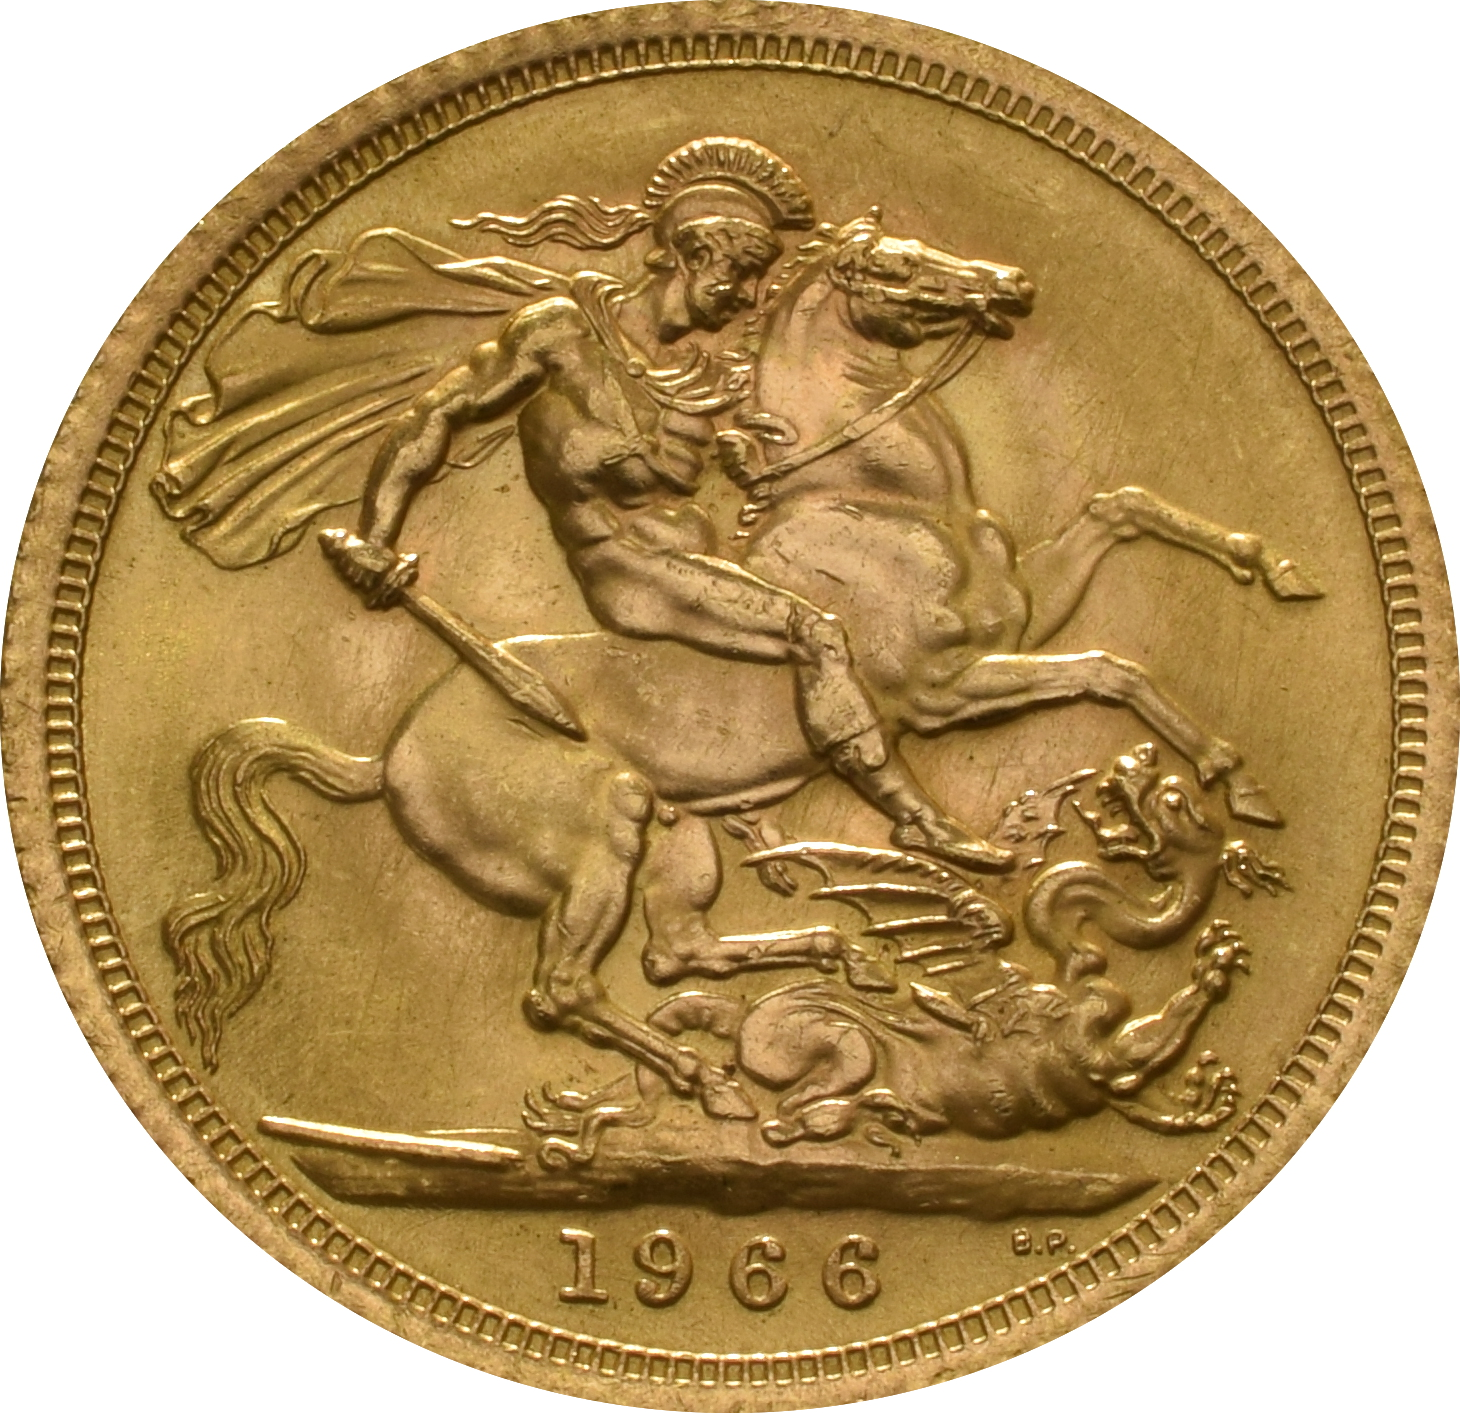 1966 Gold Sovereign Elizabeth Ii Young Head 163 286